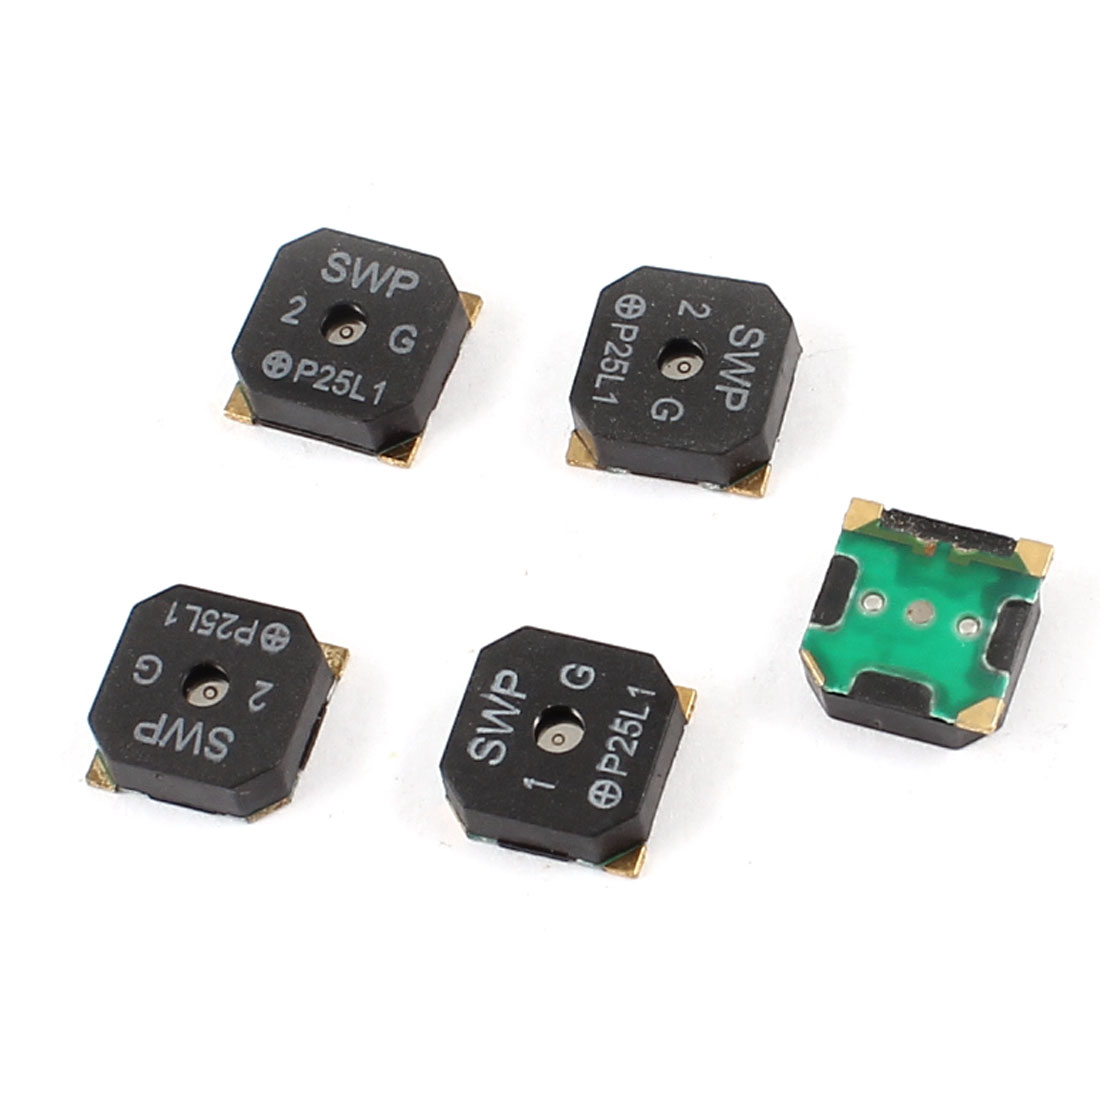 5 Pieces 8.5mm x 8.5mm x 3mm Black Square SMT SMD Buzzer DC 3/5V 100mA